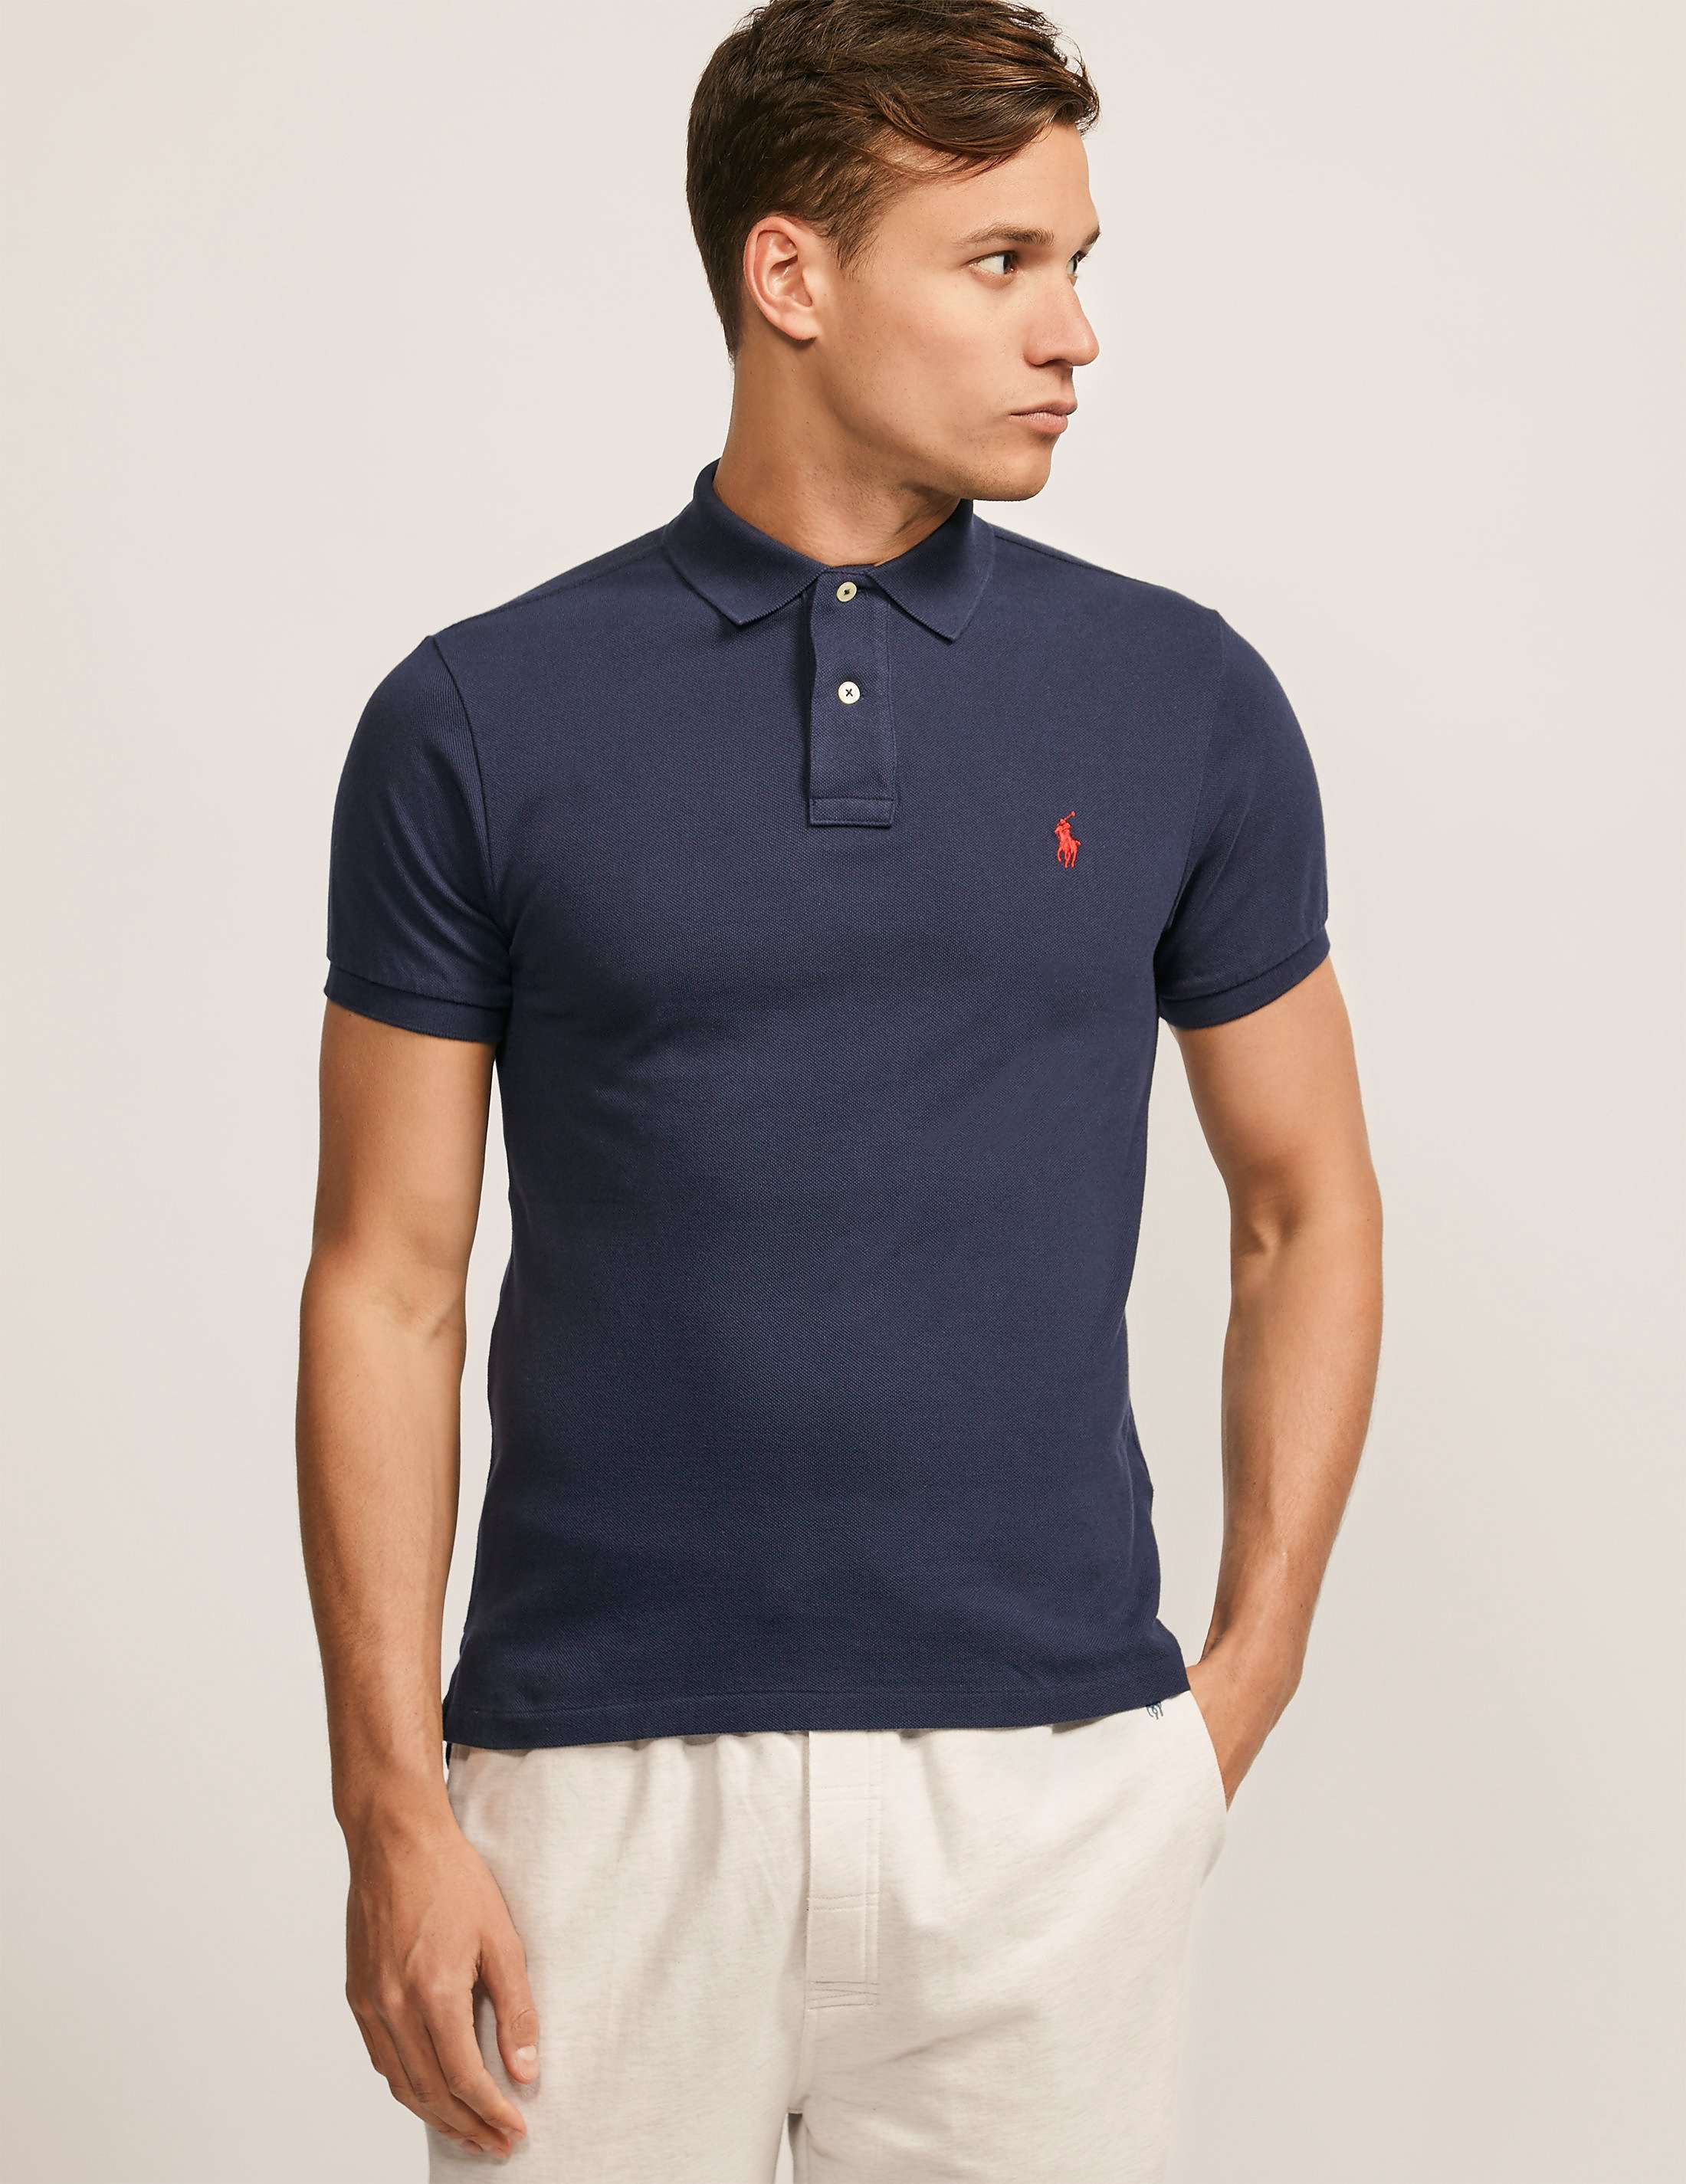 Find great deals on eBay for athletic fit polo. Shop with confidence.